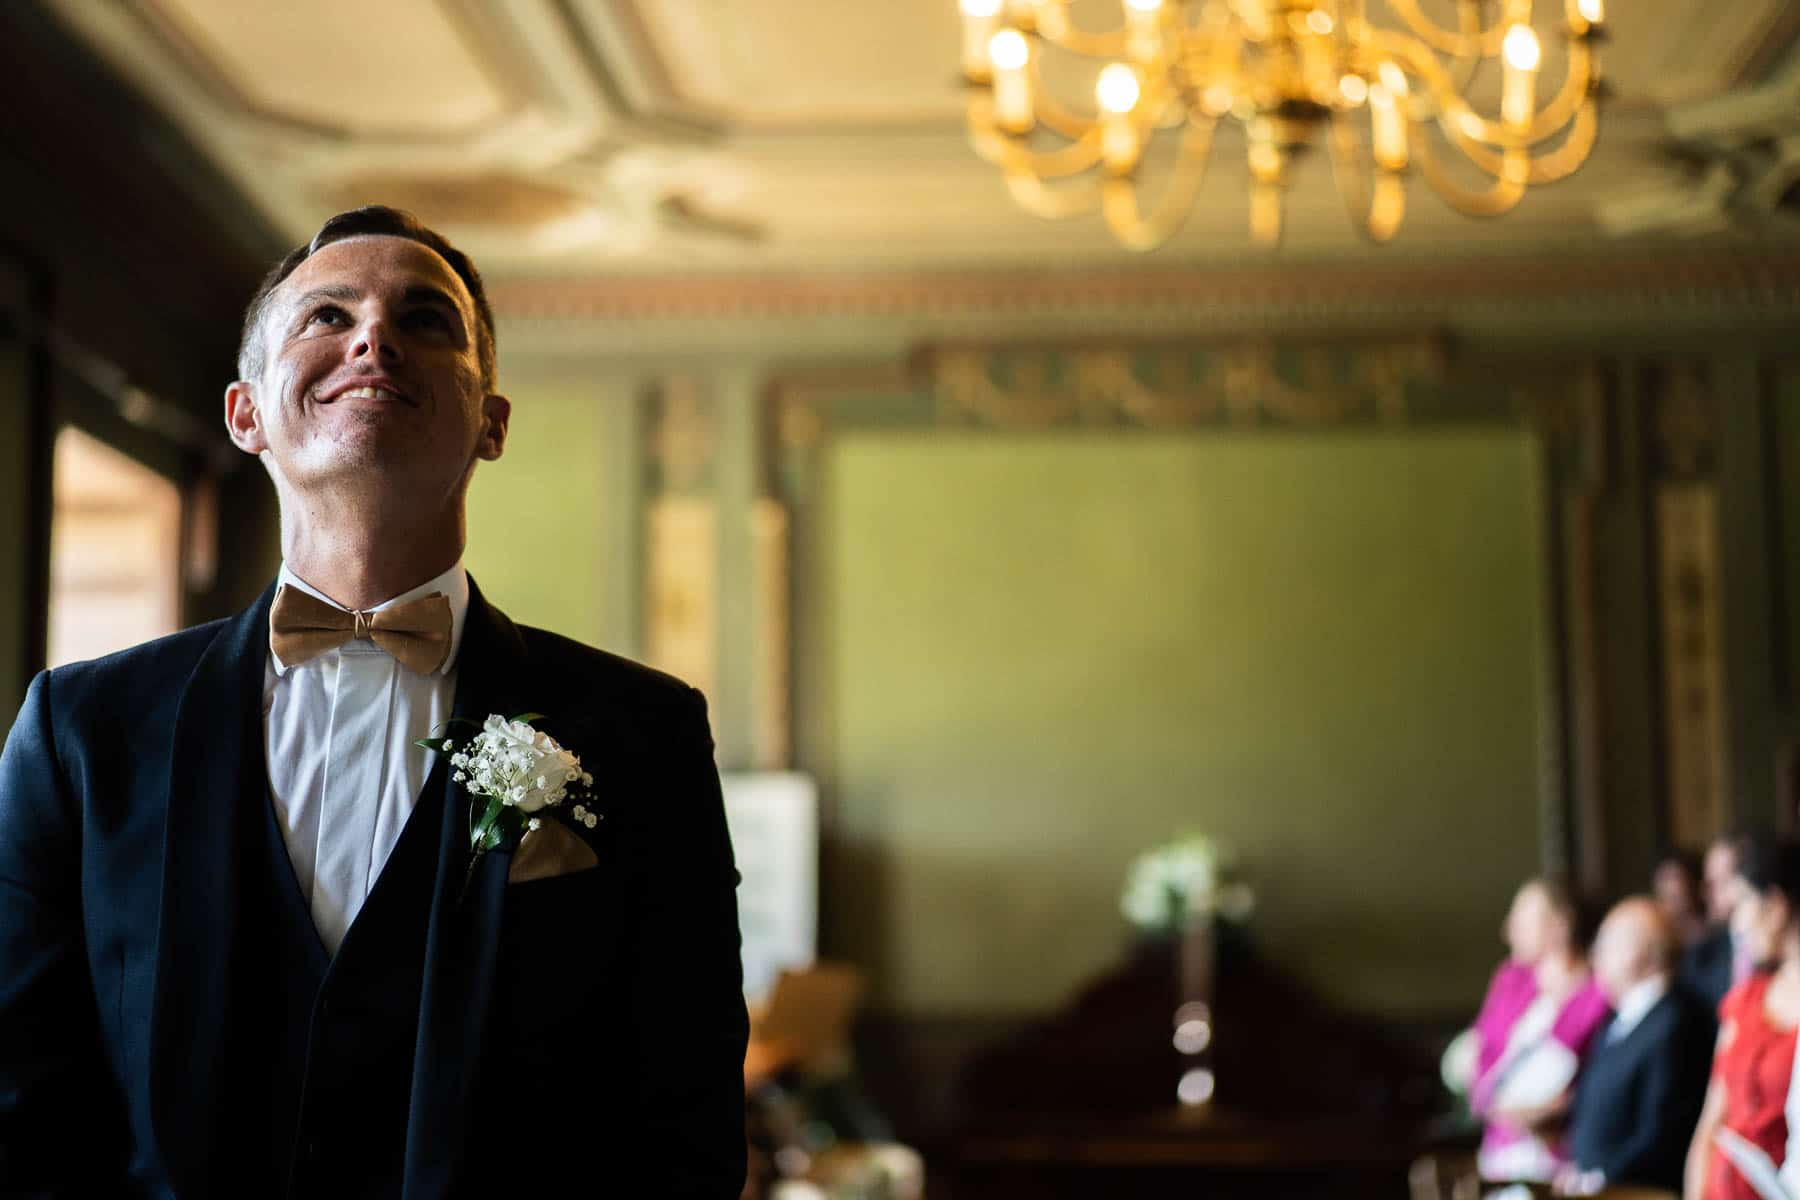 Groom nervously waiting for his bride at the alter, a beautiful photo taken in the bouverie room at delapre abbey